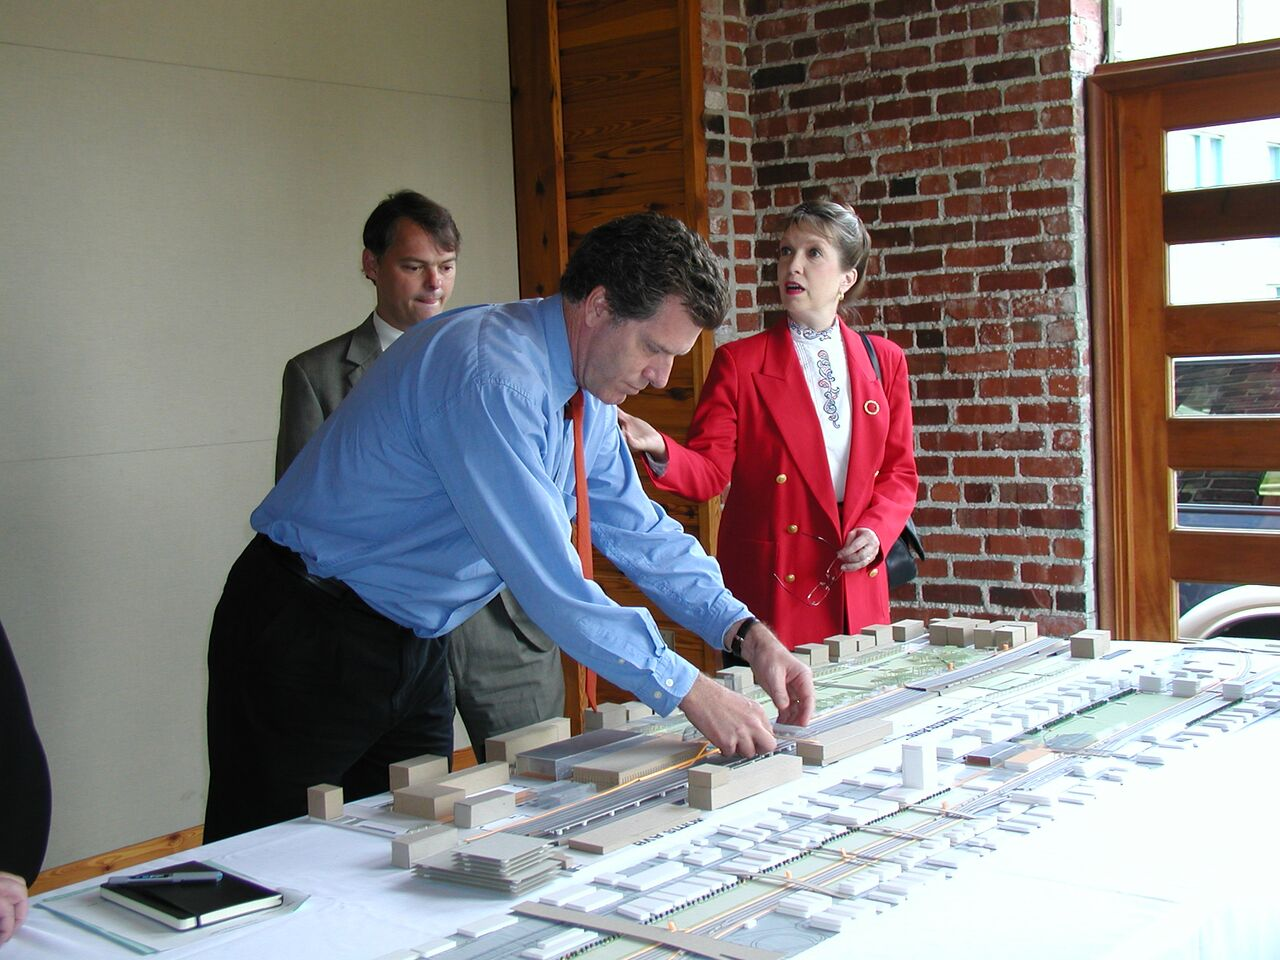 Giles and others looking at an early model of Railroad Park.